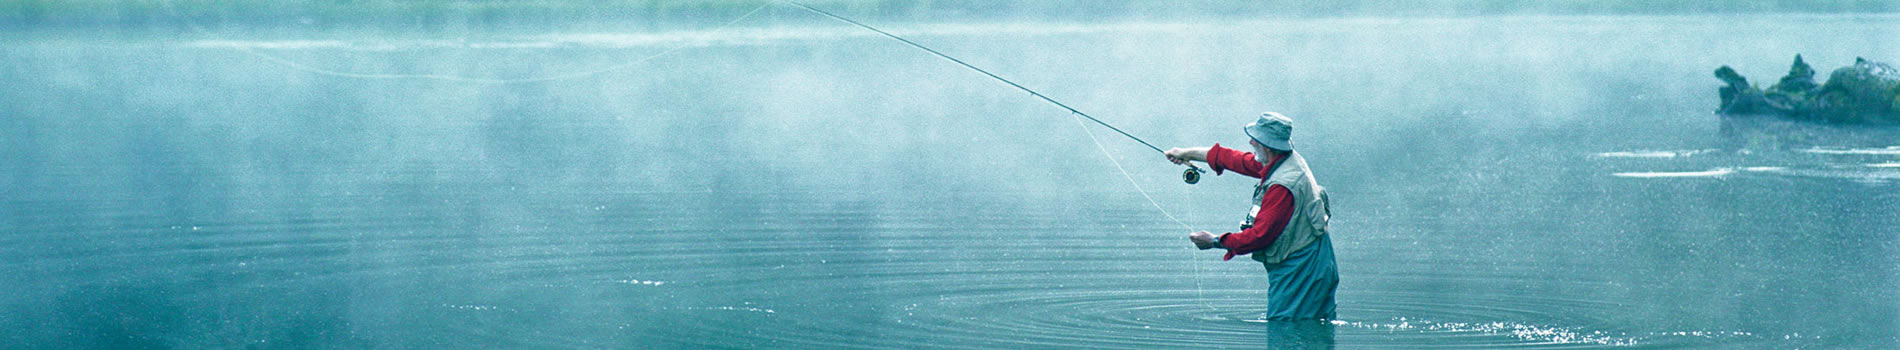 Banner image for Wealth Management Solutions.  Image is of a man fly fishing.